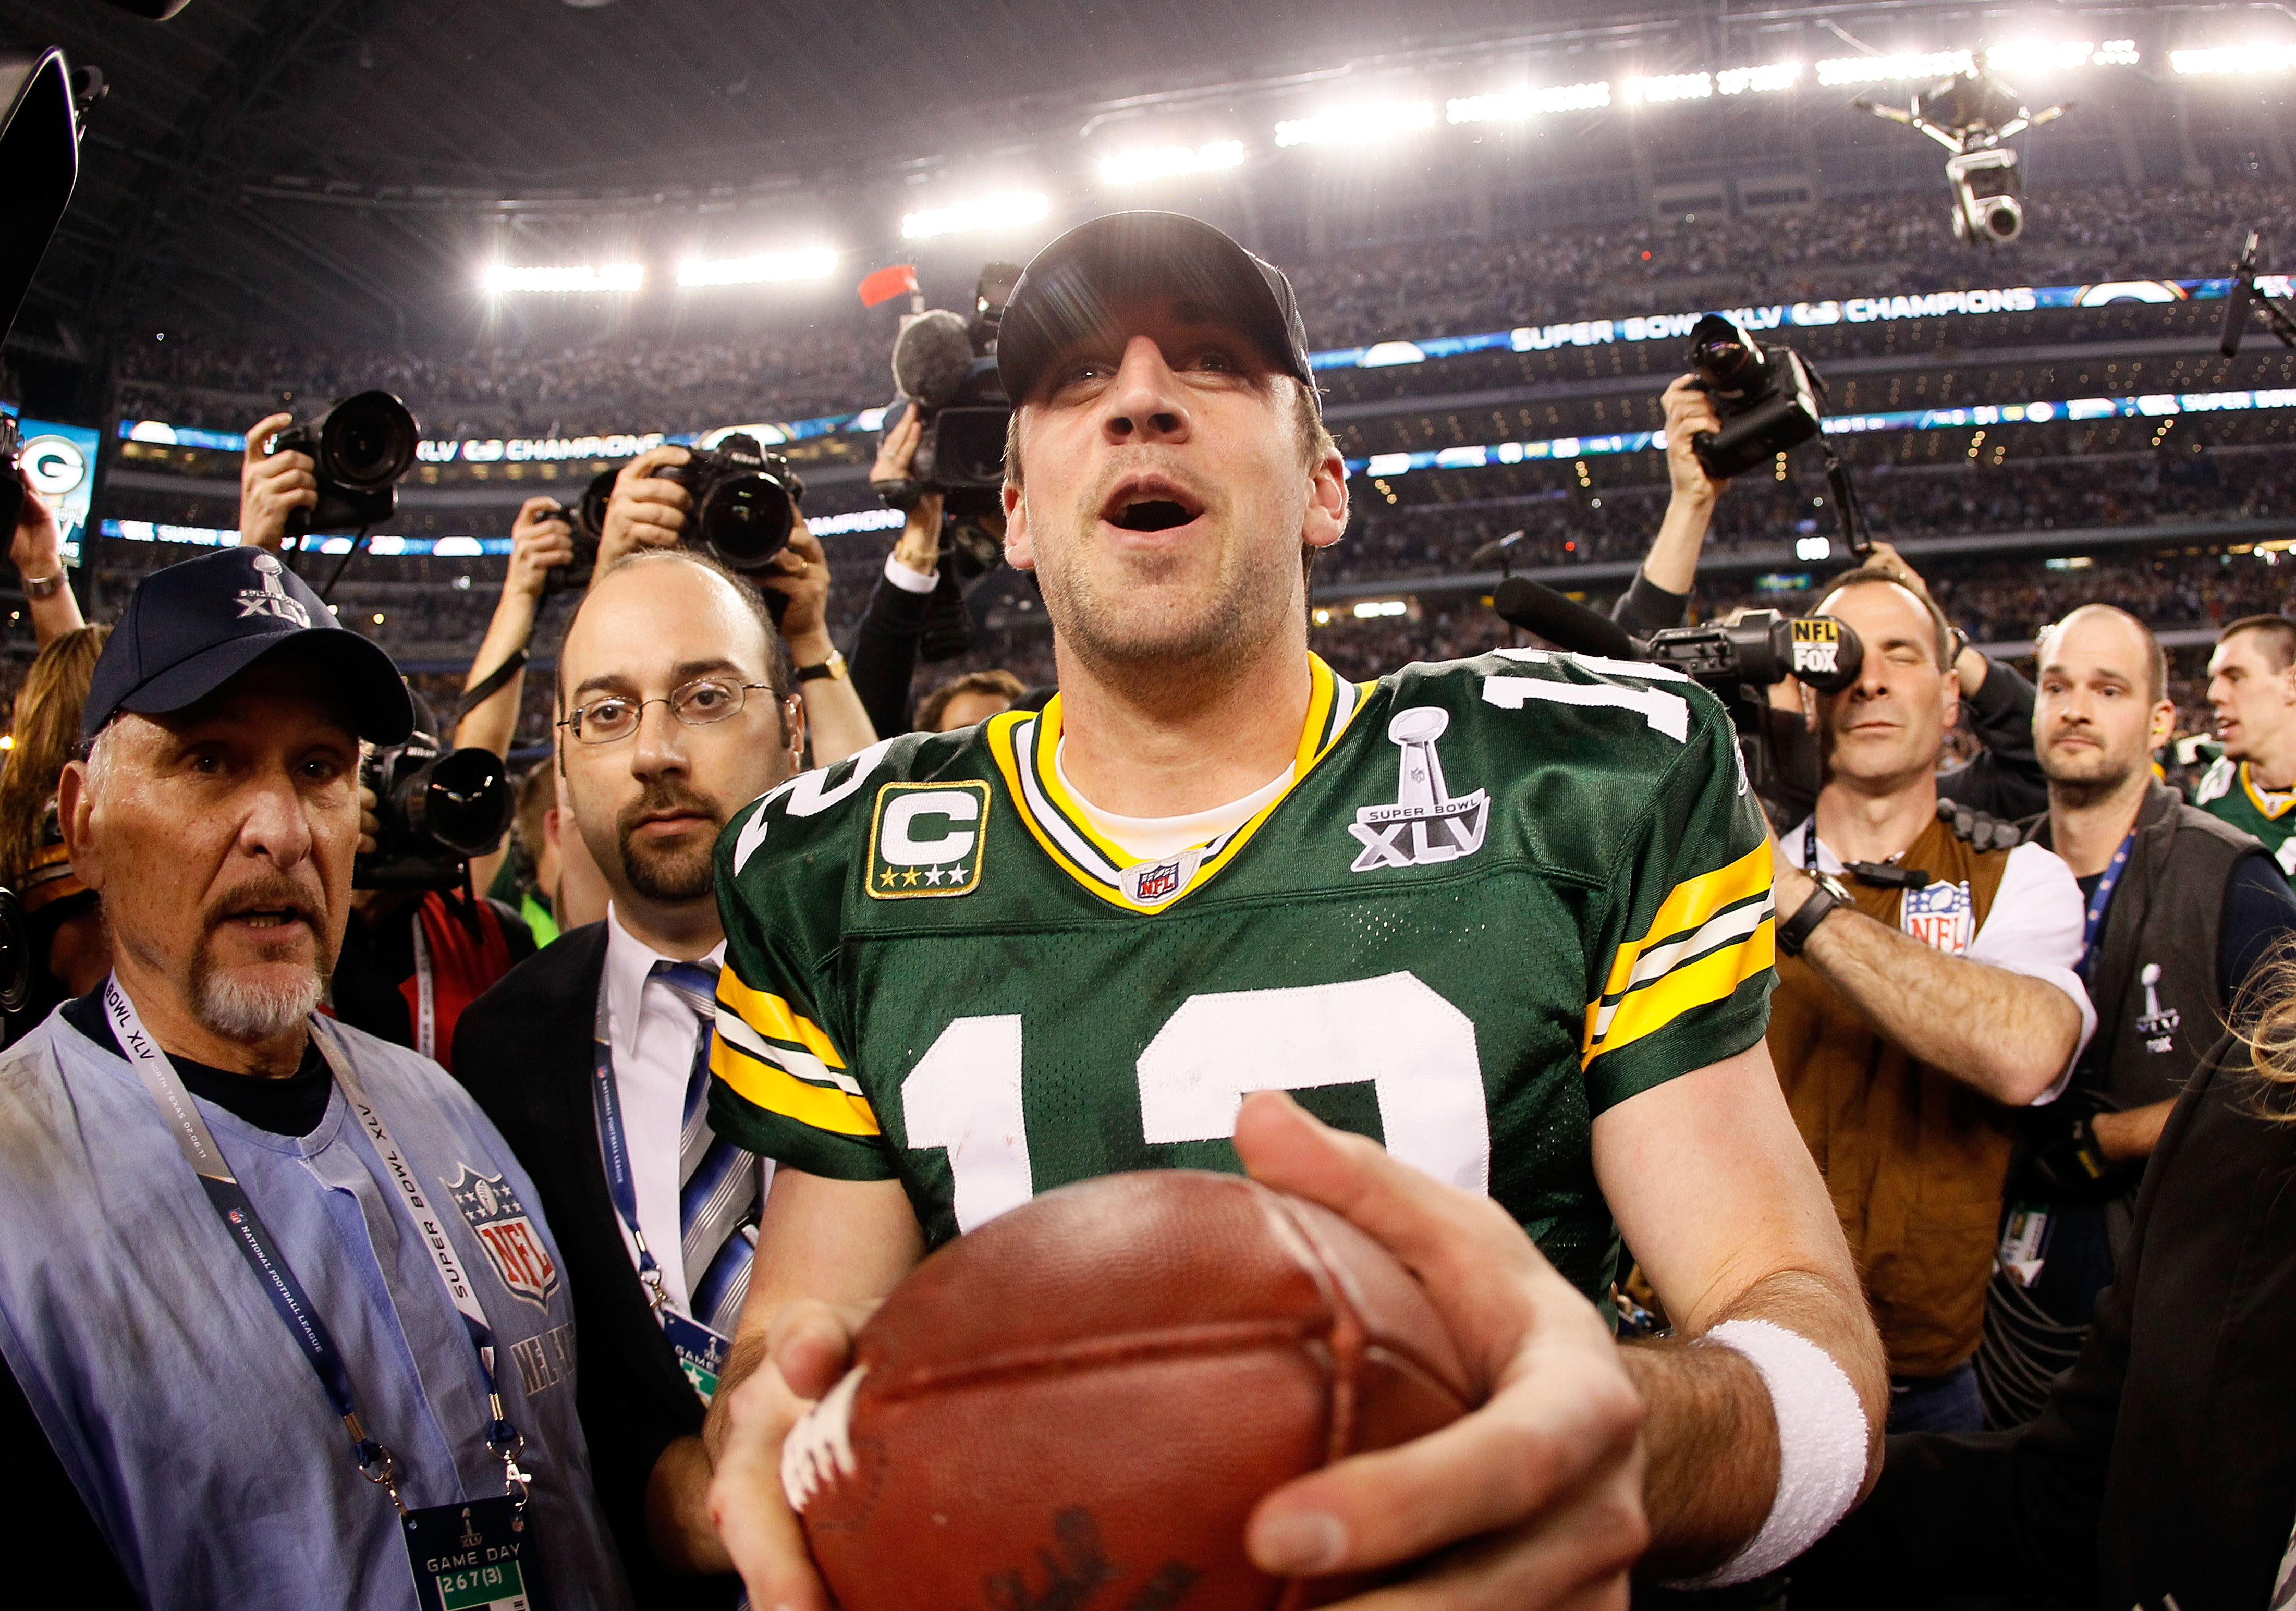 The Green Bay Packers just won Super Bowl XLV. Where do they rank?